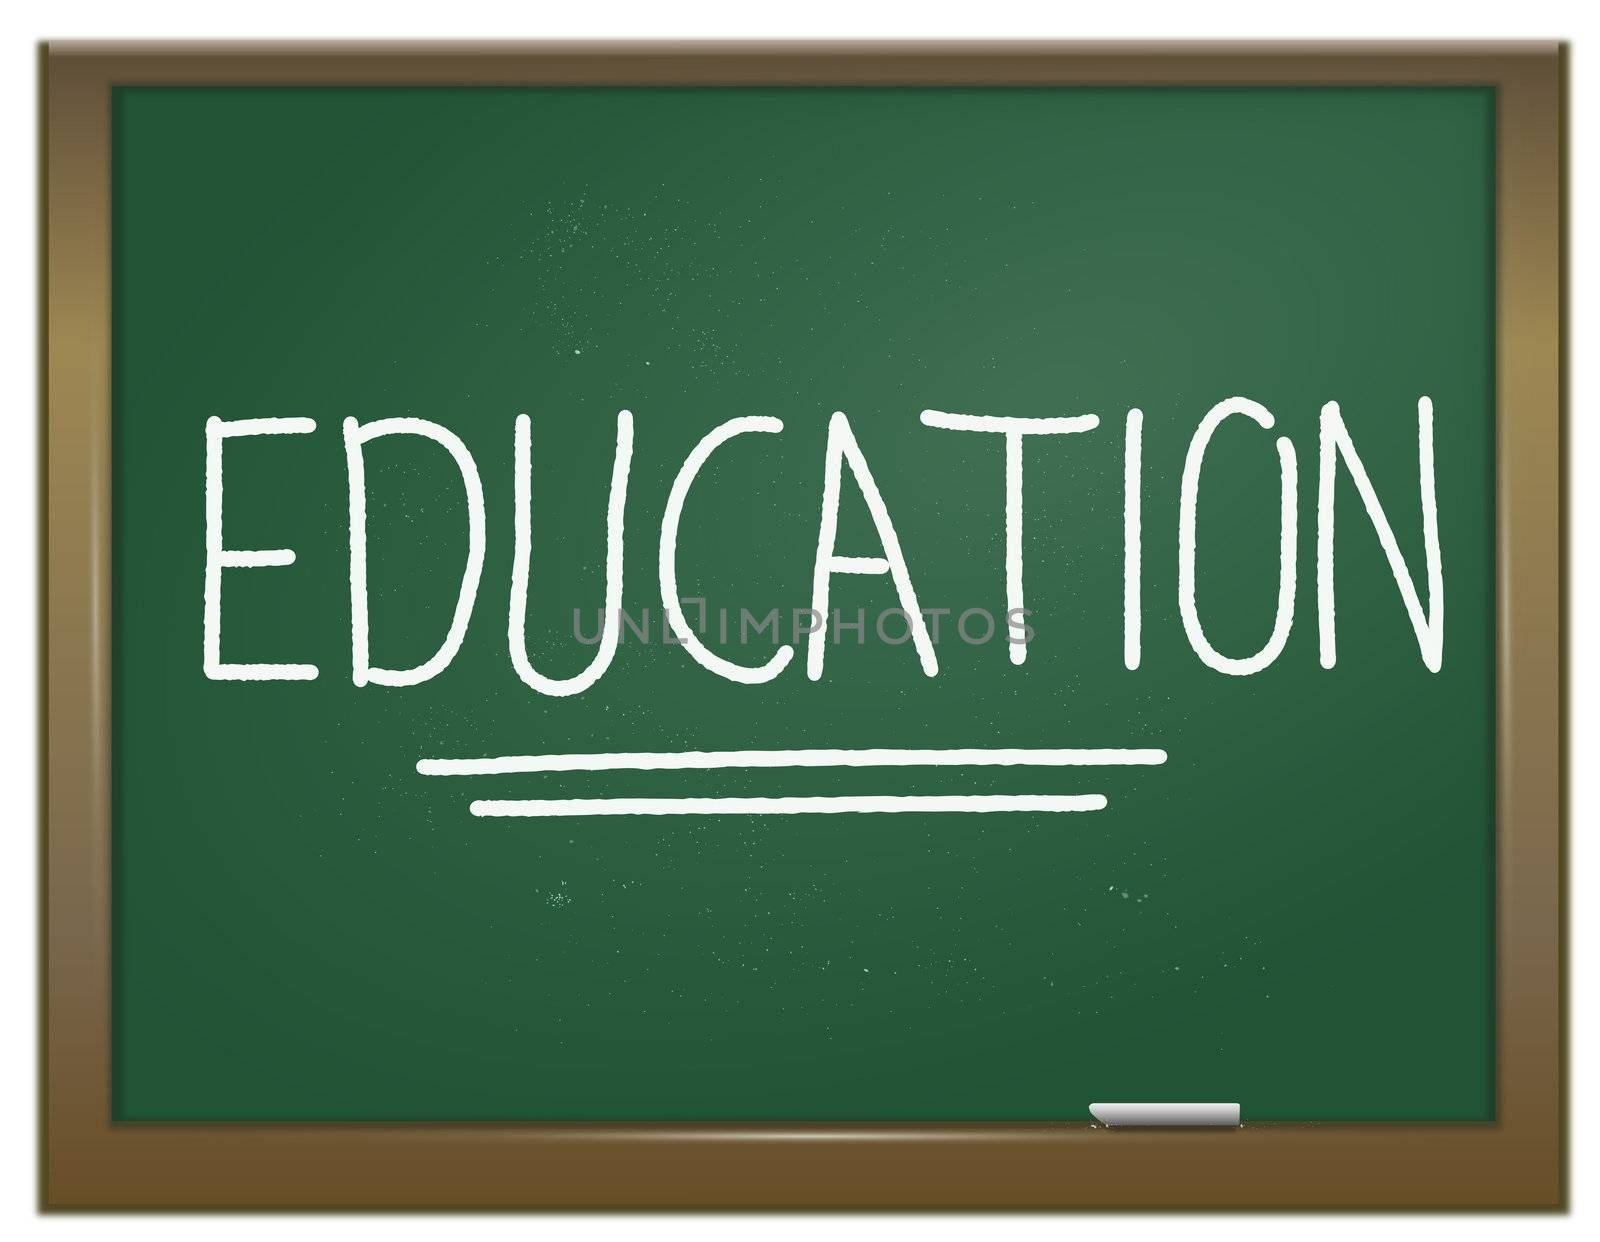 Illustration depicting a green chalk board with the word 'education' written on it in white chalk.